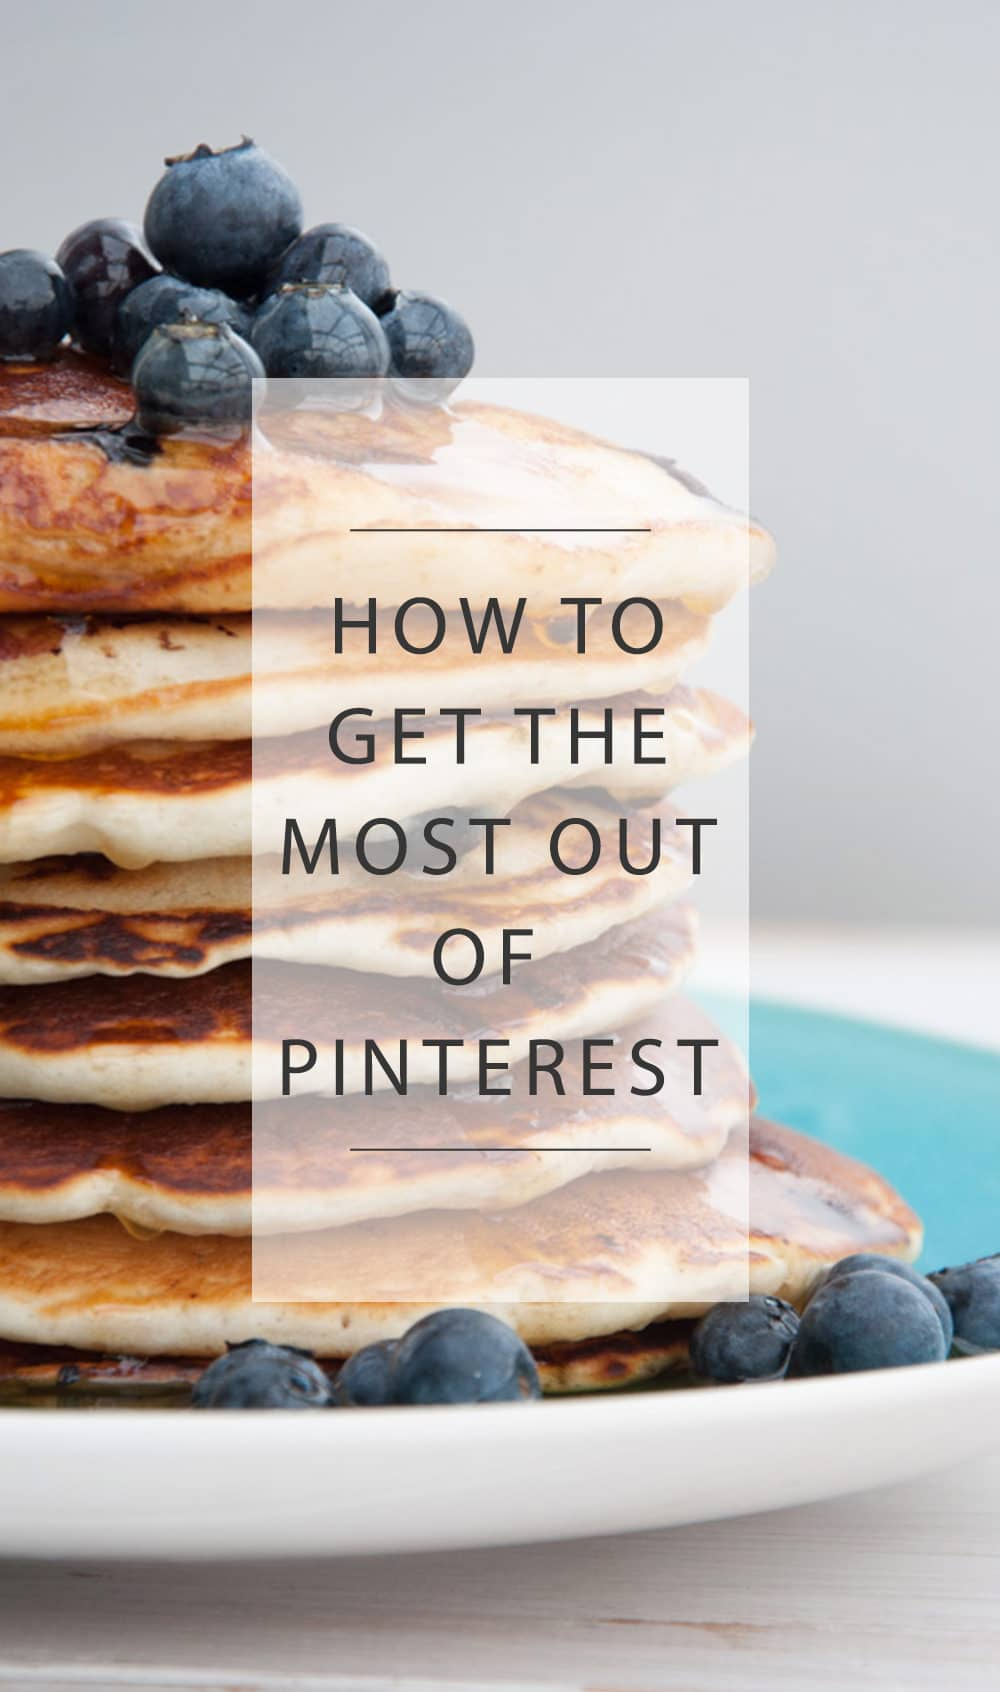 How to get the most out of PINTEREST for your BLOG #pinterest #blog #resources #blogging #blogger #trafficgrowth